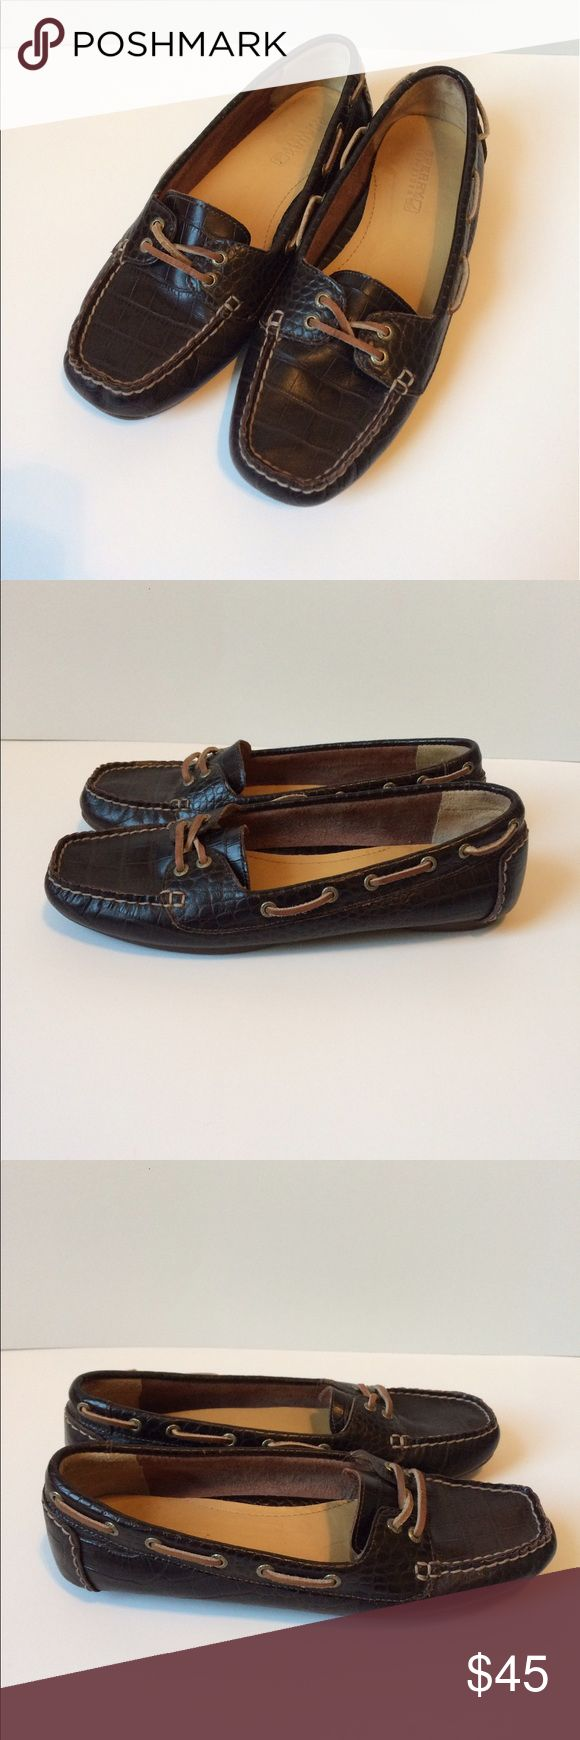 Sperry Top Sider loafers ladies 🌷🌸SPRING SALE🌸🌷 $2 off single items! Use the Offer button and offer $2 below the list price and it will be accepted! (Will still entertain other offers) Adorable croc style leather loafers! Beautiful rich dark leather. Leather laces. Virtually no wear and tear! Worn maybe twice! Very minimal scuffing on back shown in last photo. Excellent condition! 💲I ❤️ OFFERS!💲 🌟TOP-RATED🌟 📦📬FAST SHIPPER📬📦 🎁USE BUNDLE FOR SAVINGS🎁 Sperry Top-Sider Shoes Flats…